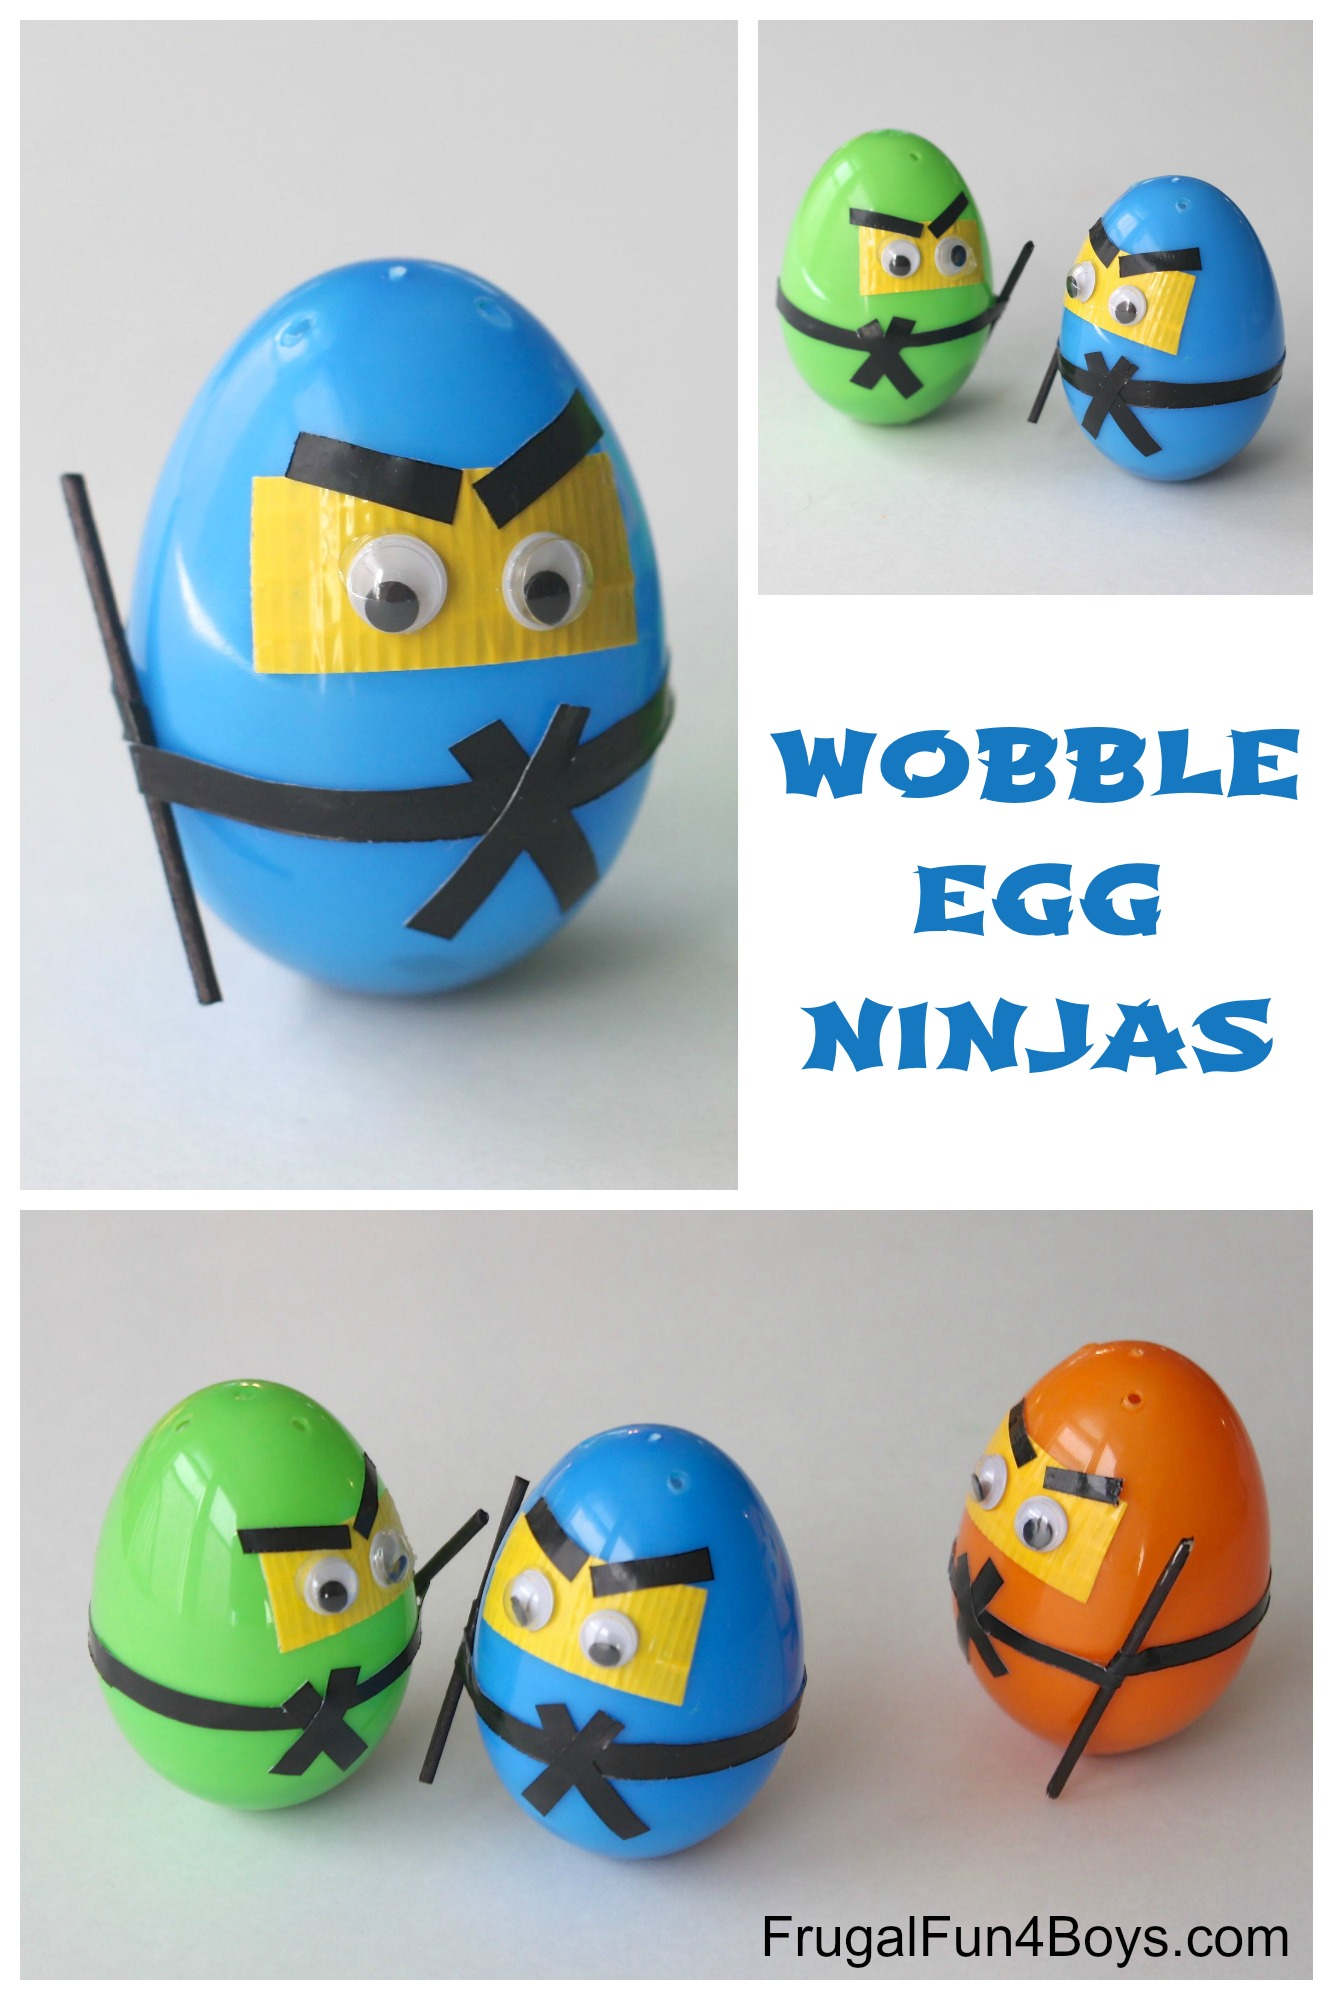 How to Make Wobble Egg Ninjas